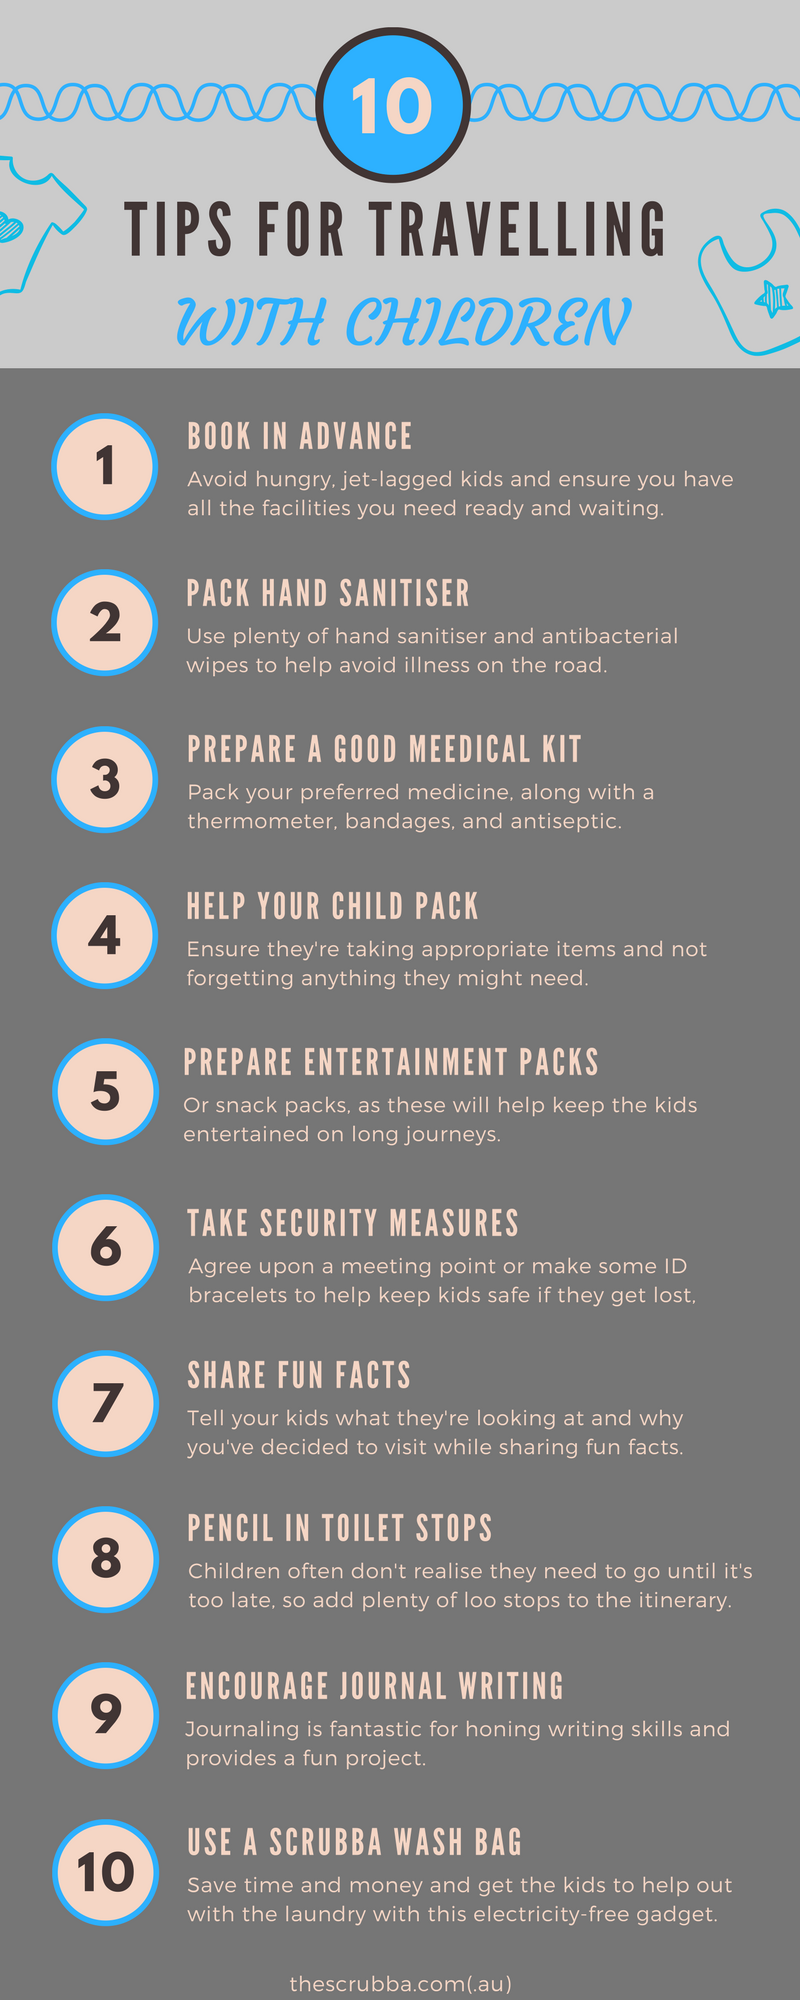 10 Tips for Travelling with Children Infographic